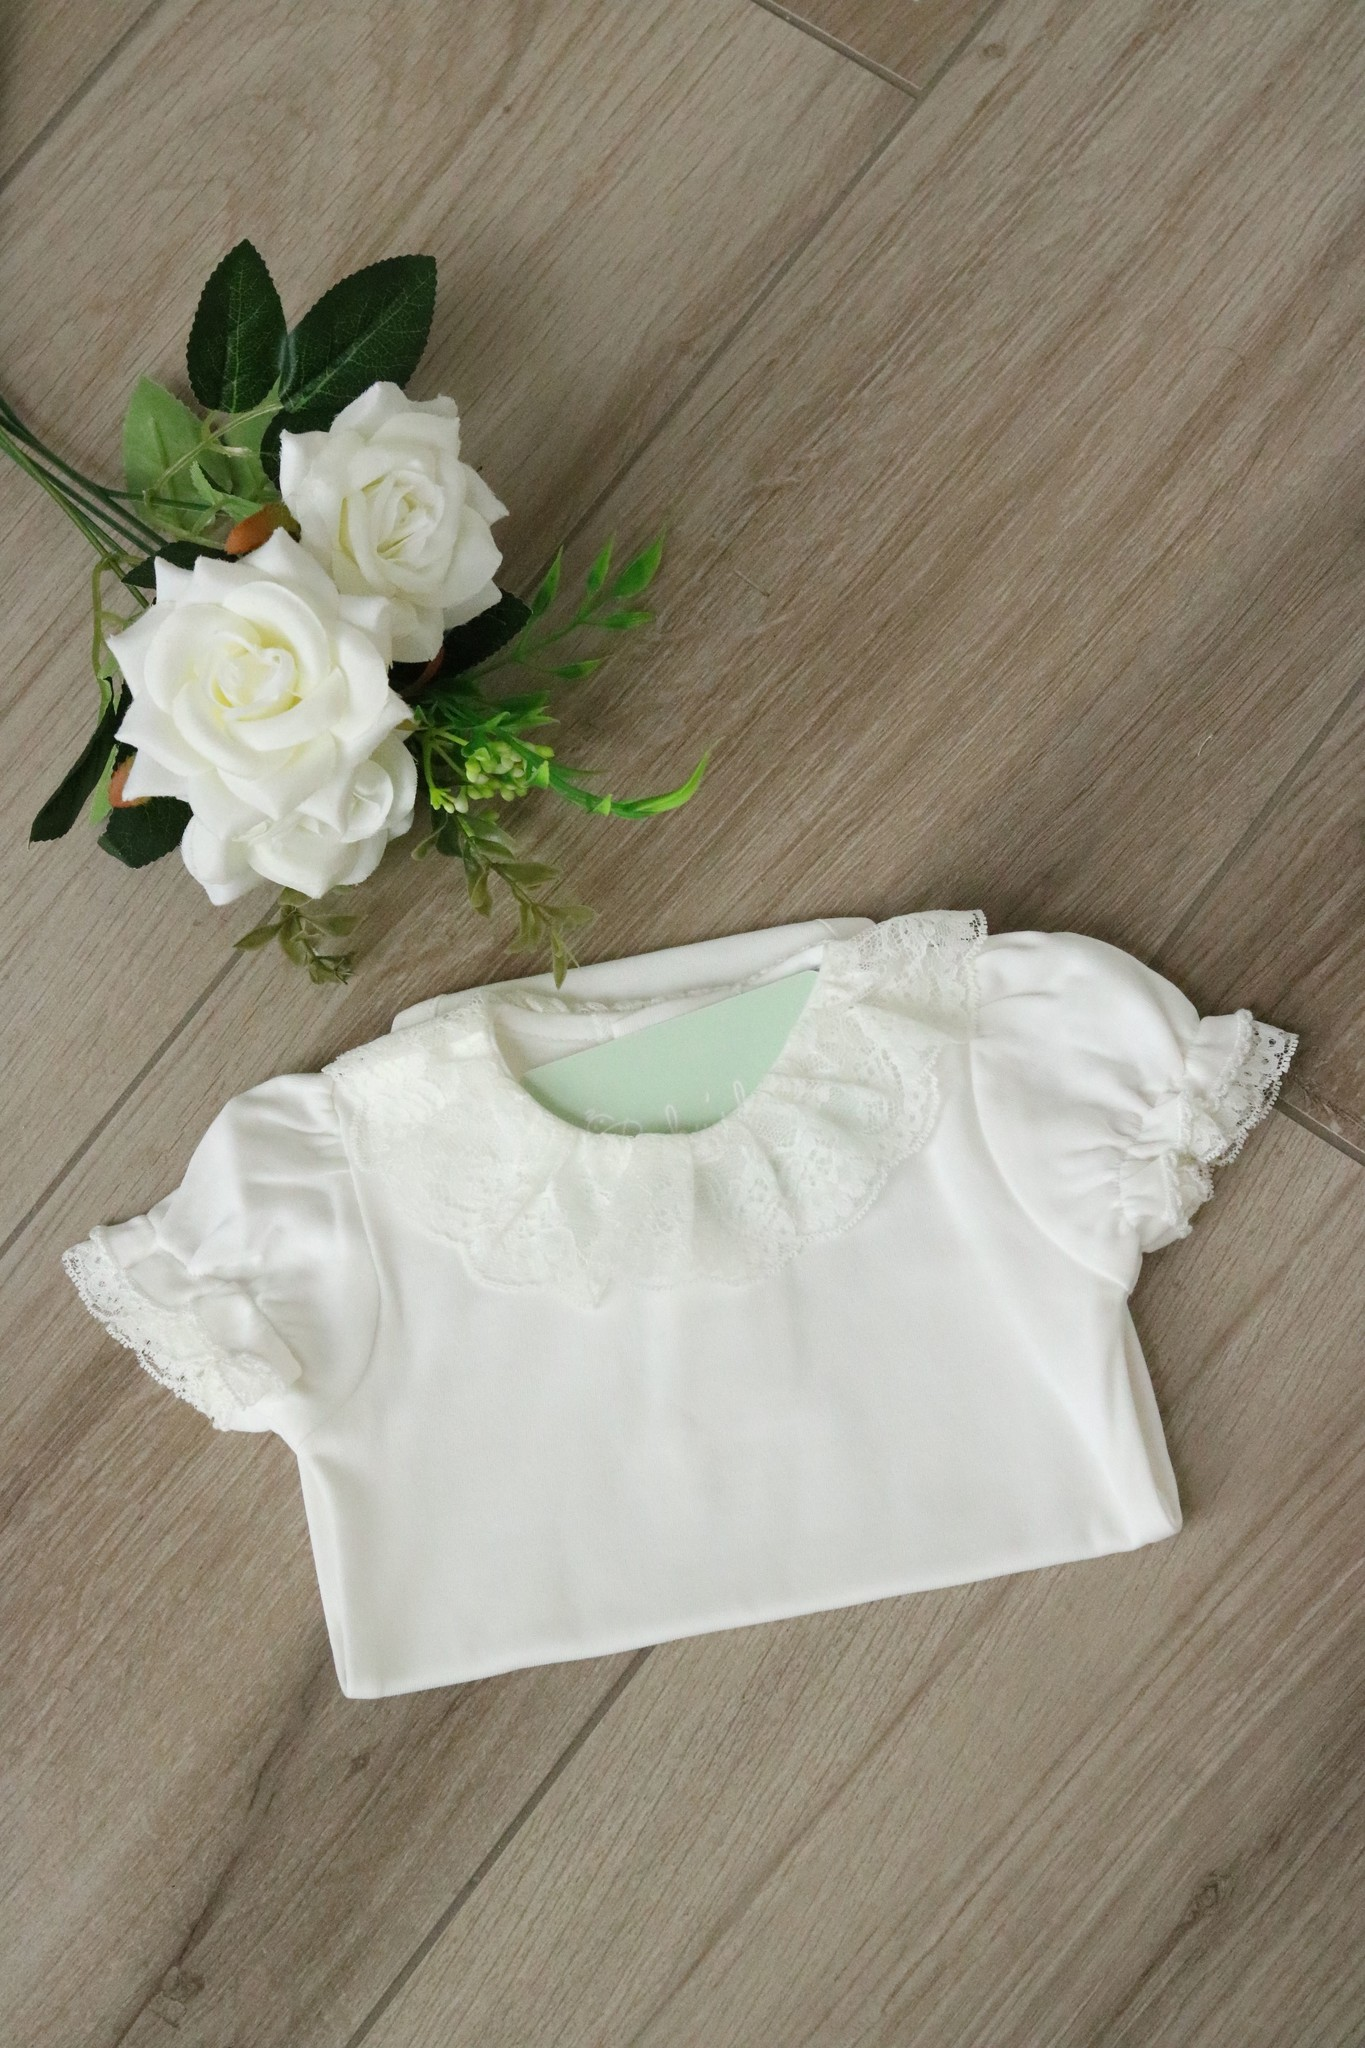 White Body with full lace collar and short sleeves-1